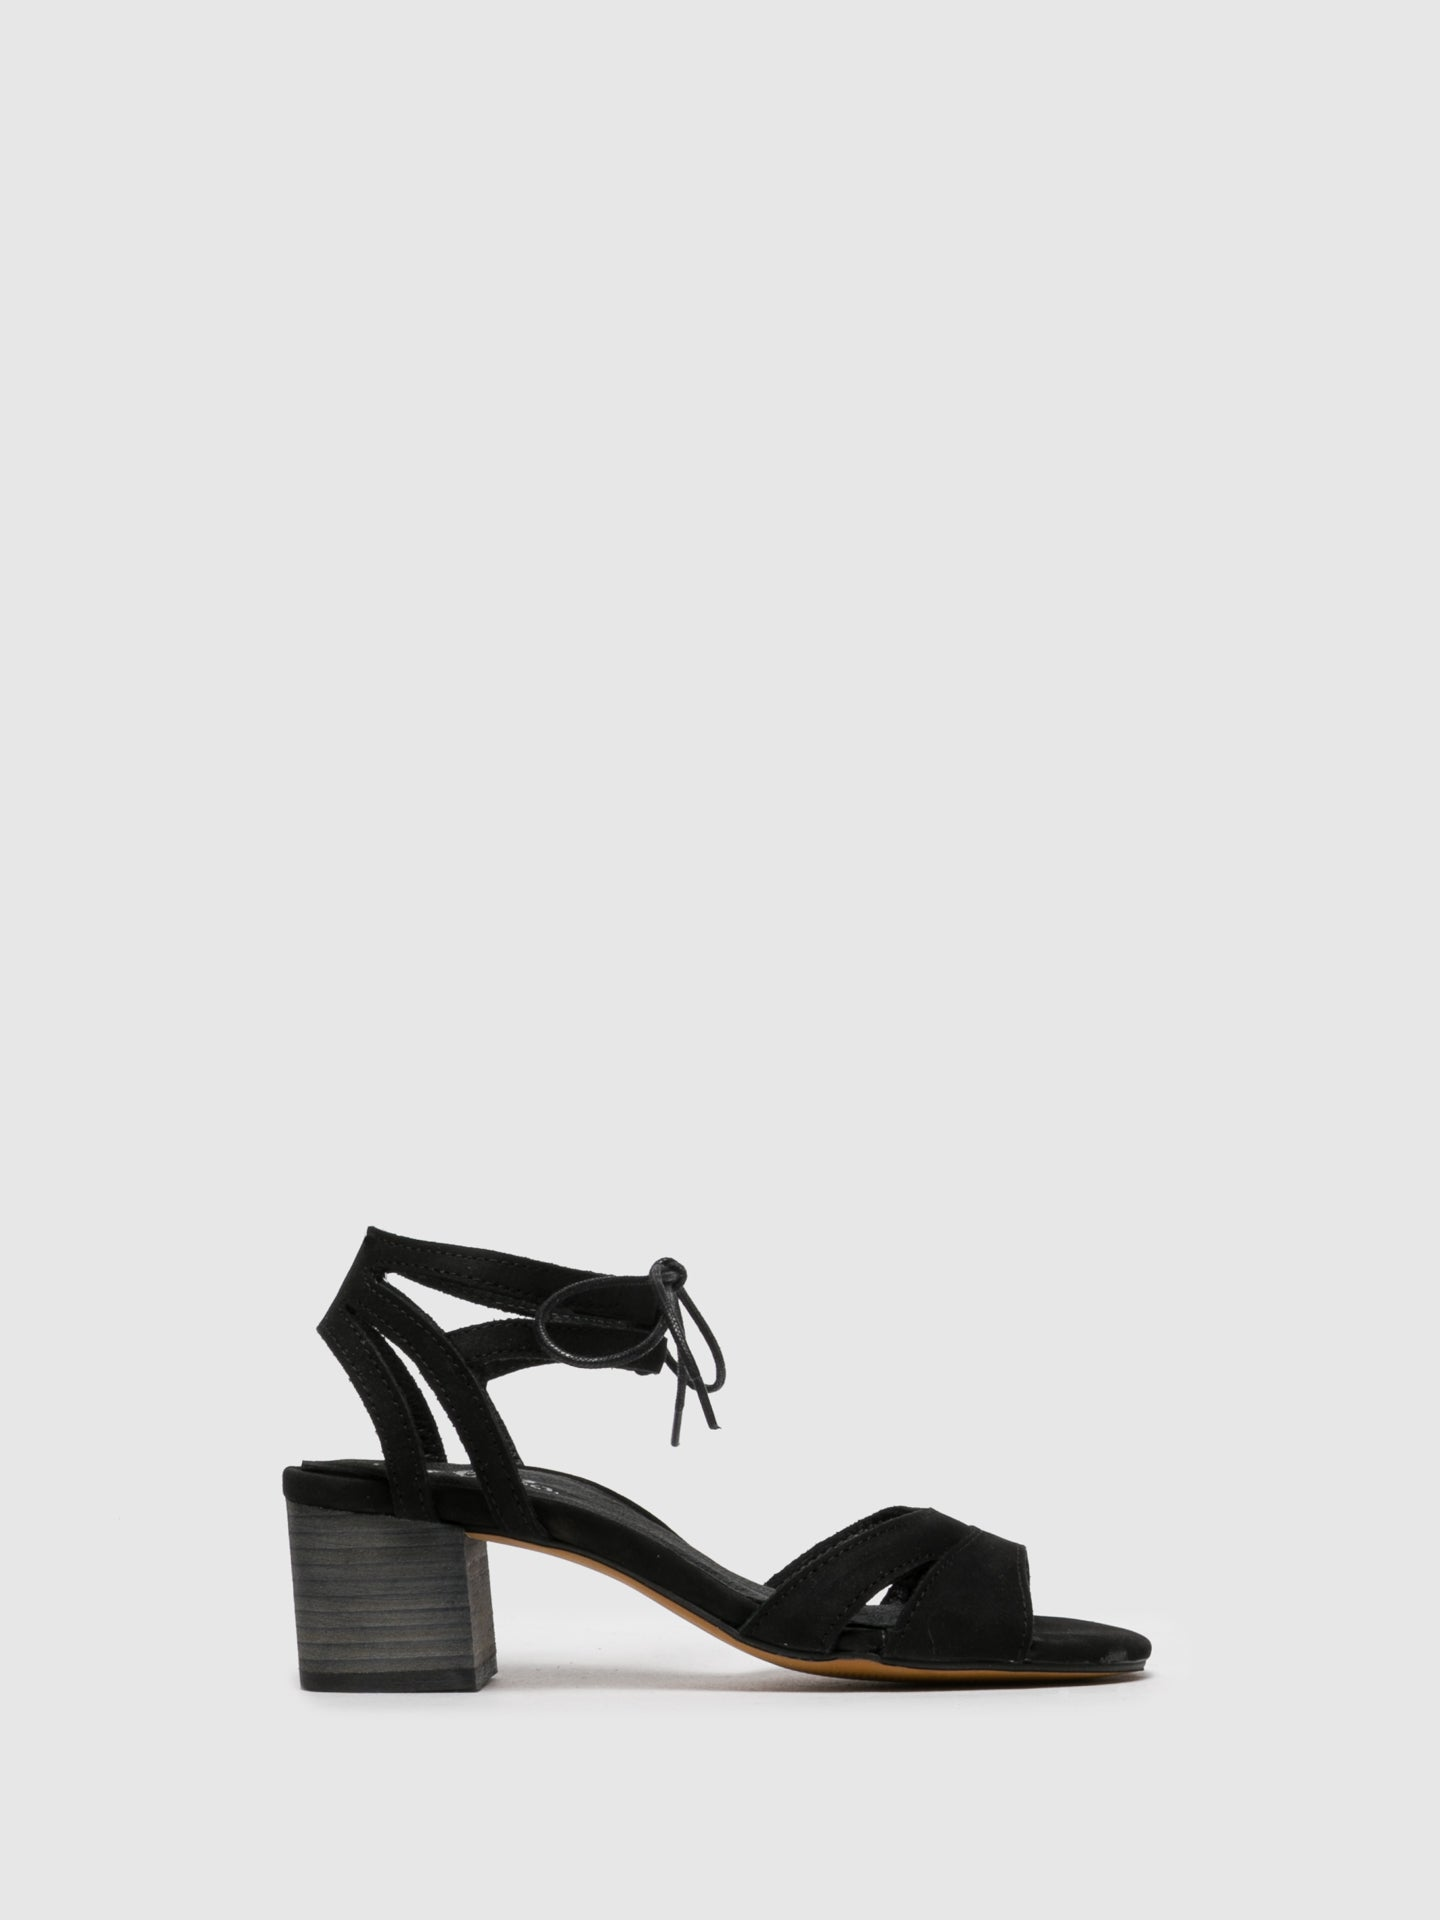 Bos&Co Black Ankle Strap Sandals